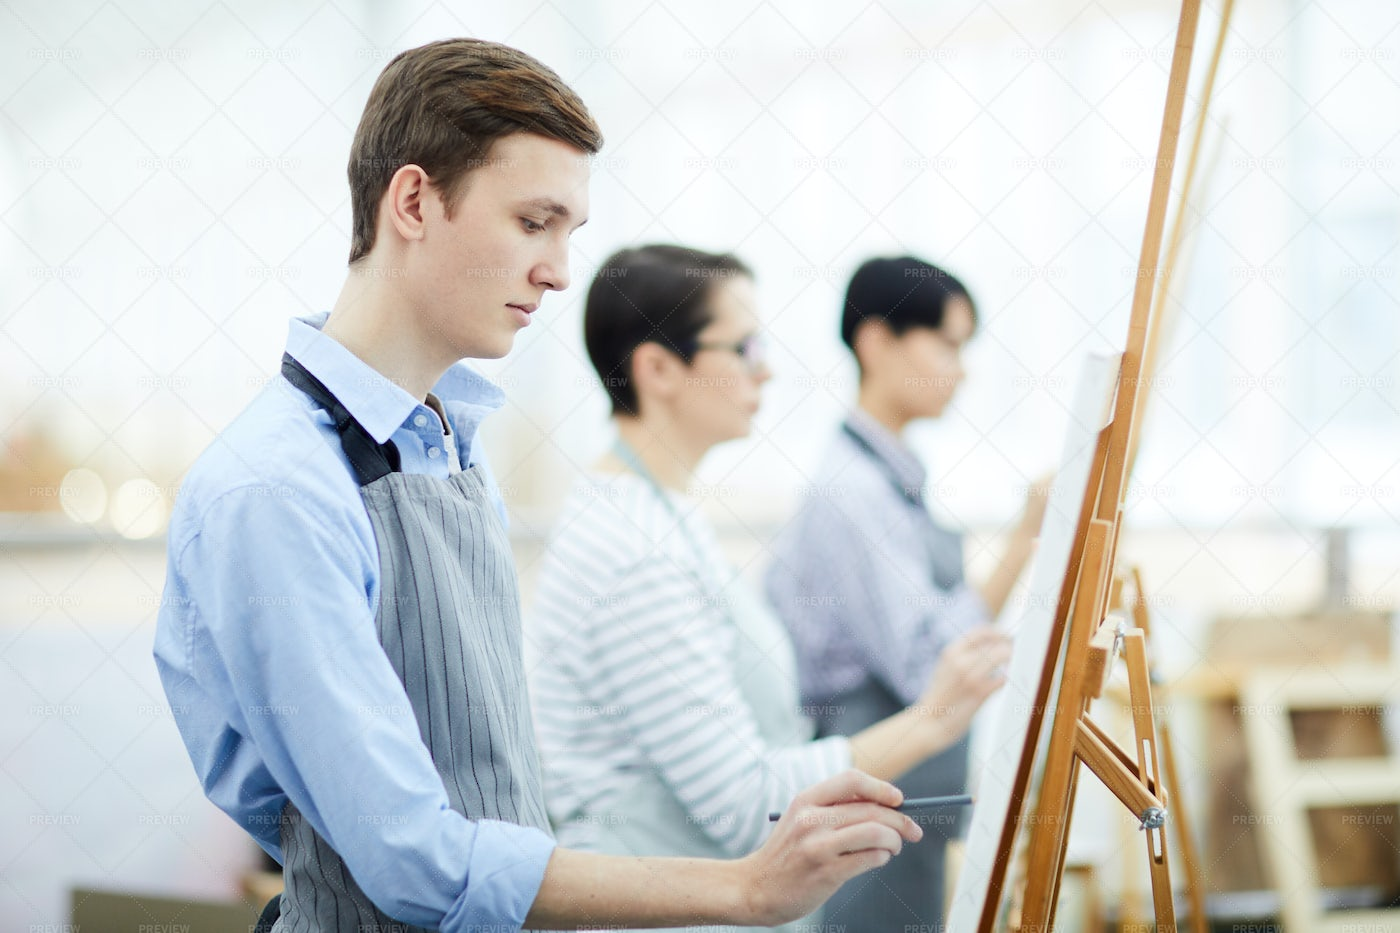 Pensive Young Man Painting: Stock Photos